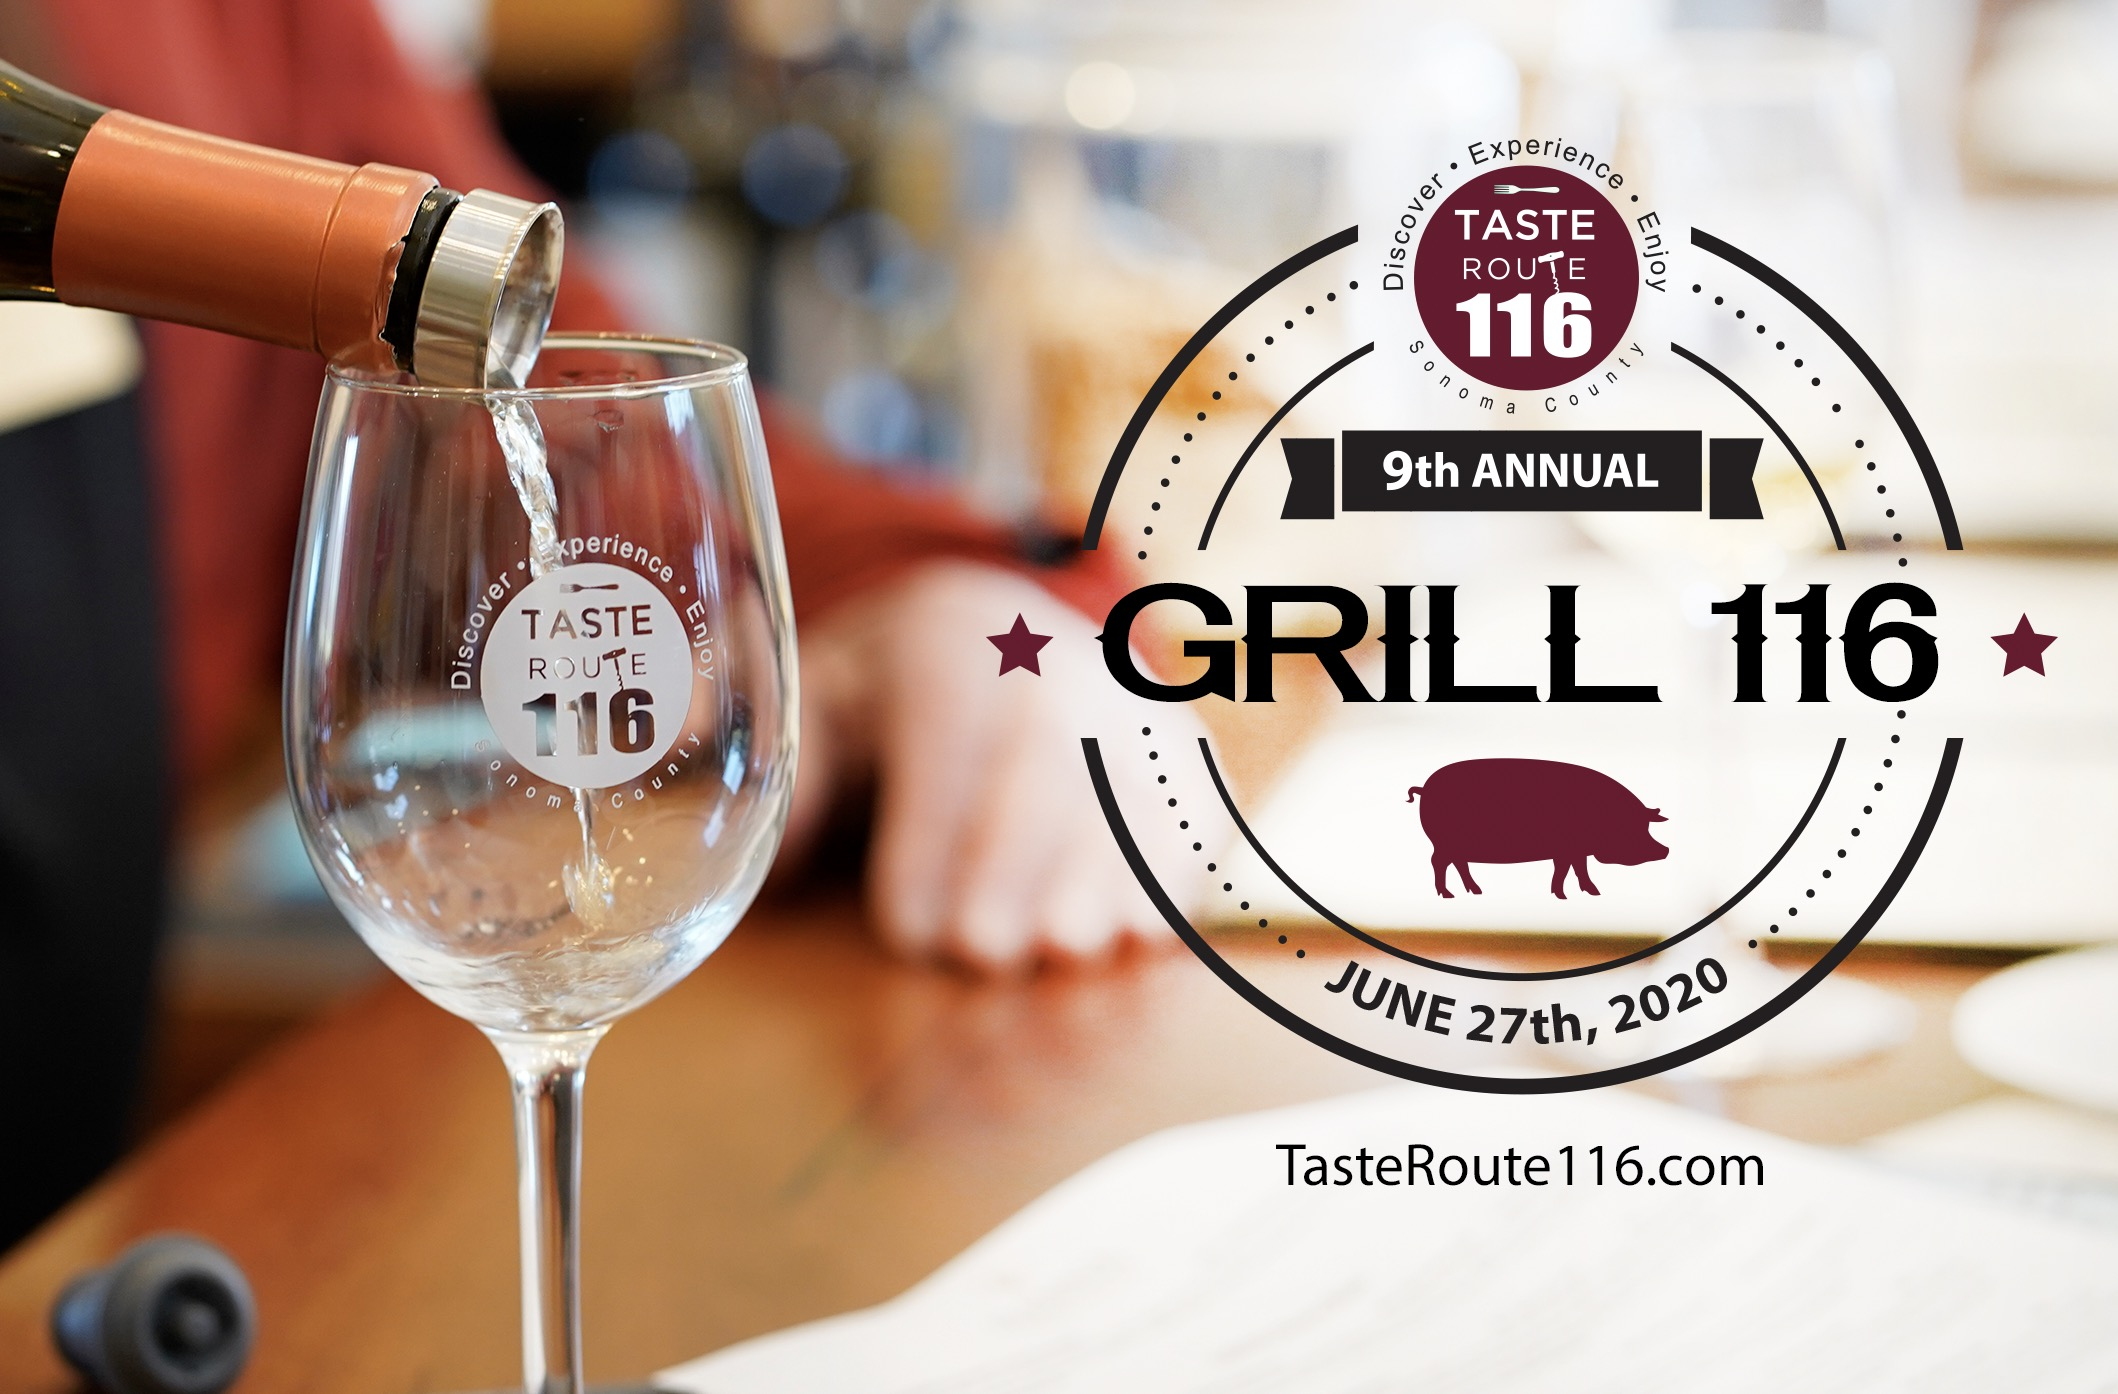 Grill 116